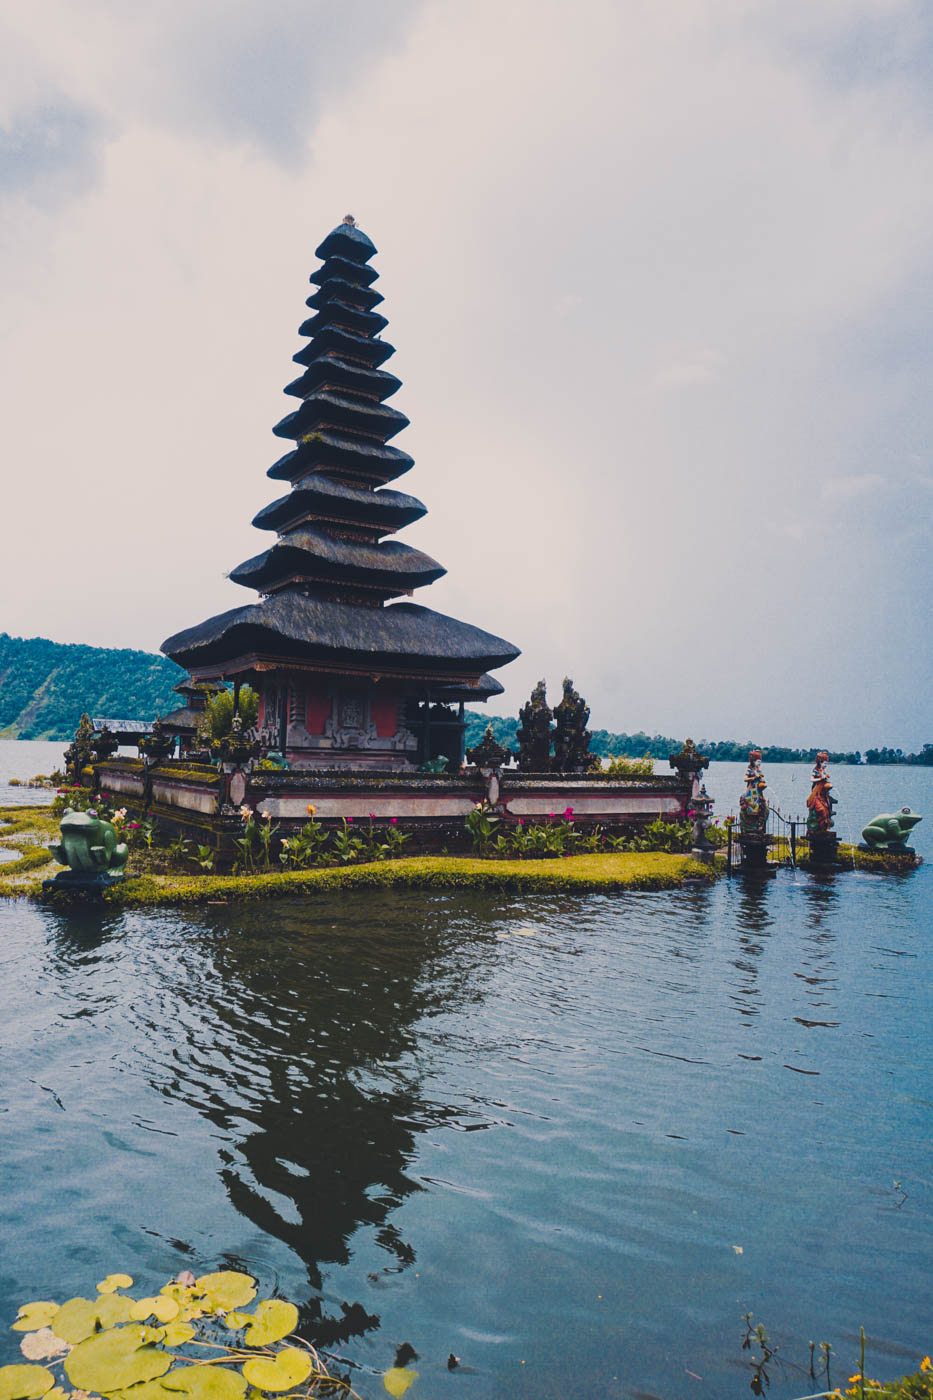 Ulun Bratan Bali Itinerary #traveldestinations #bali #beautifulplaces